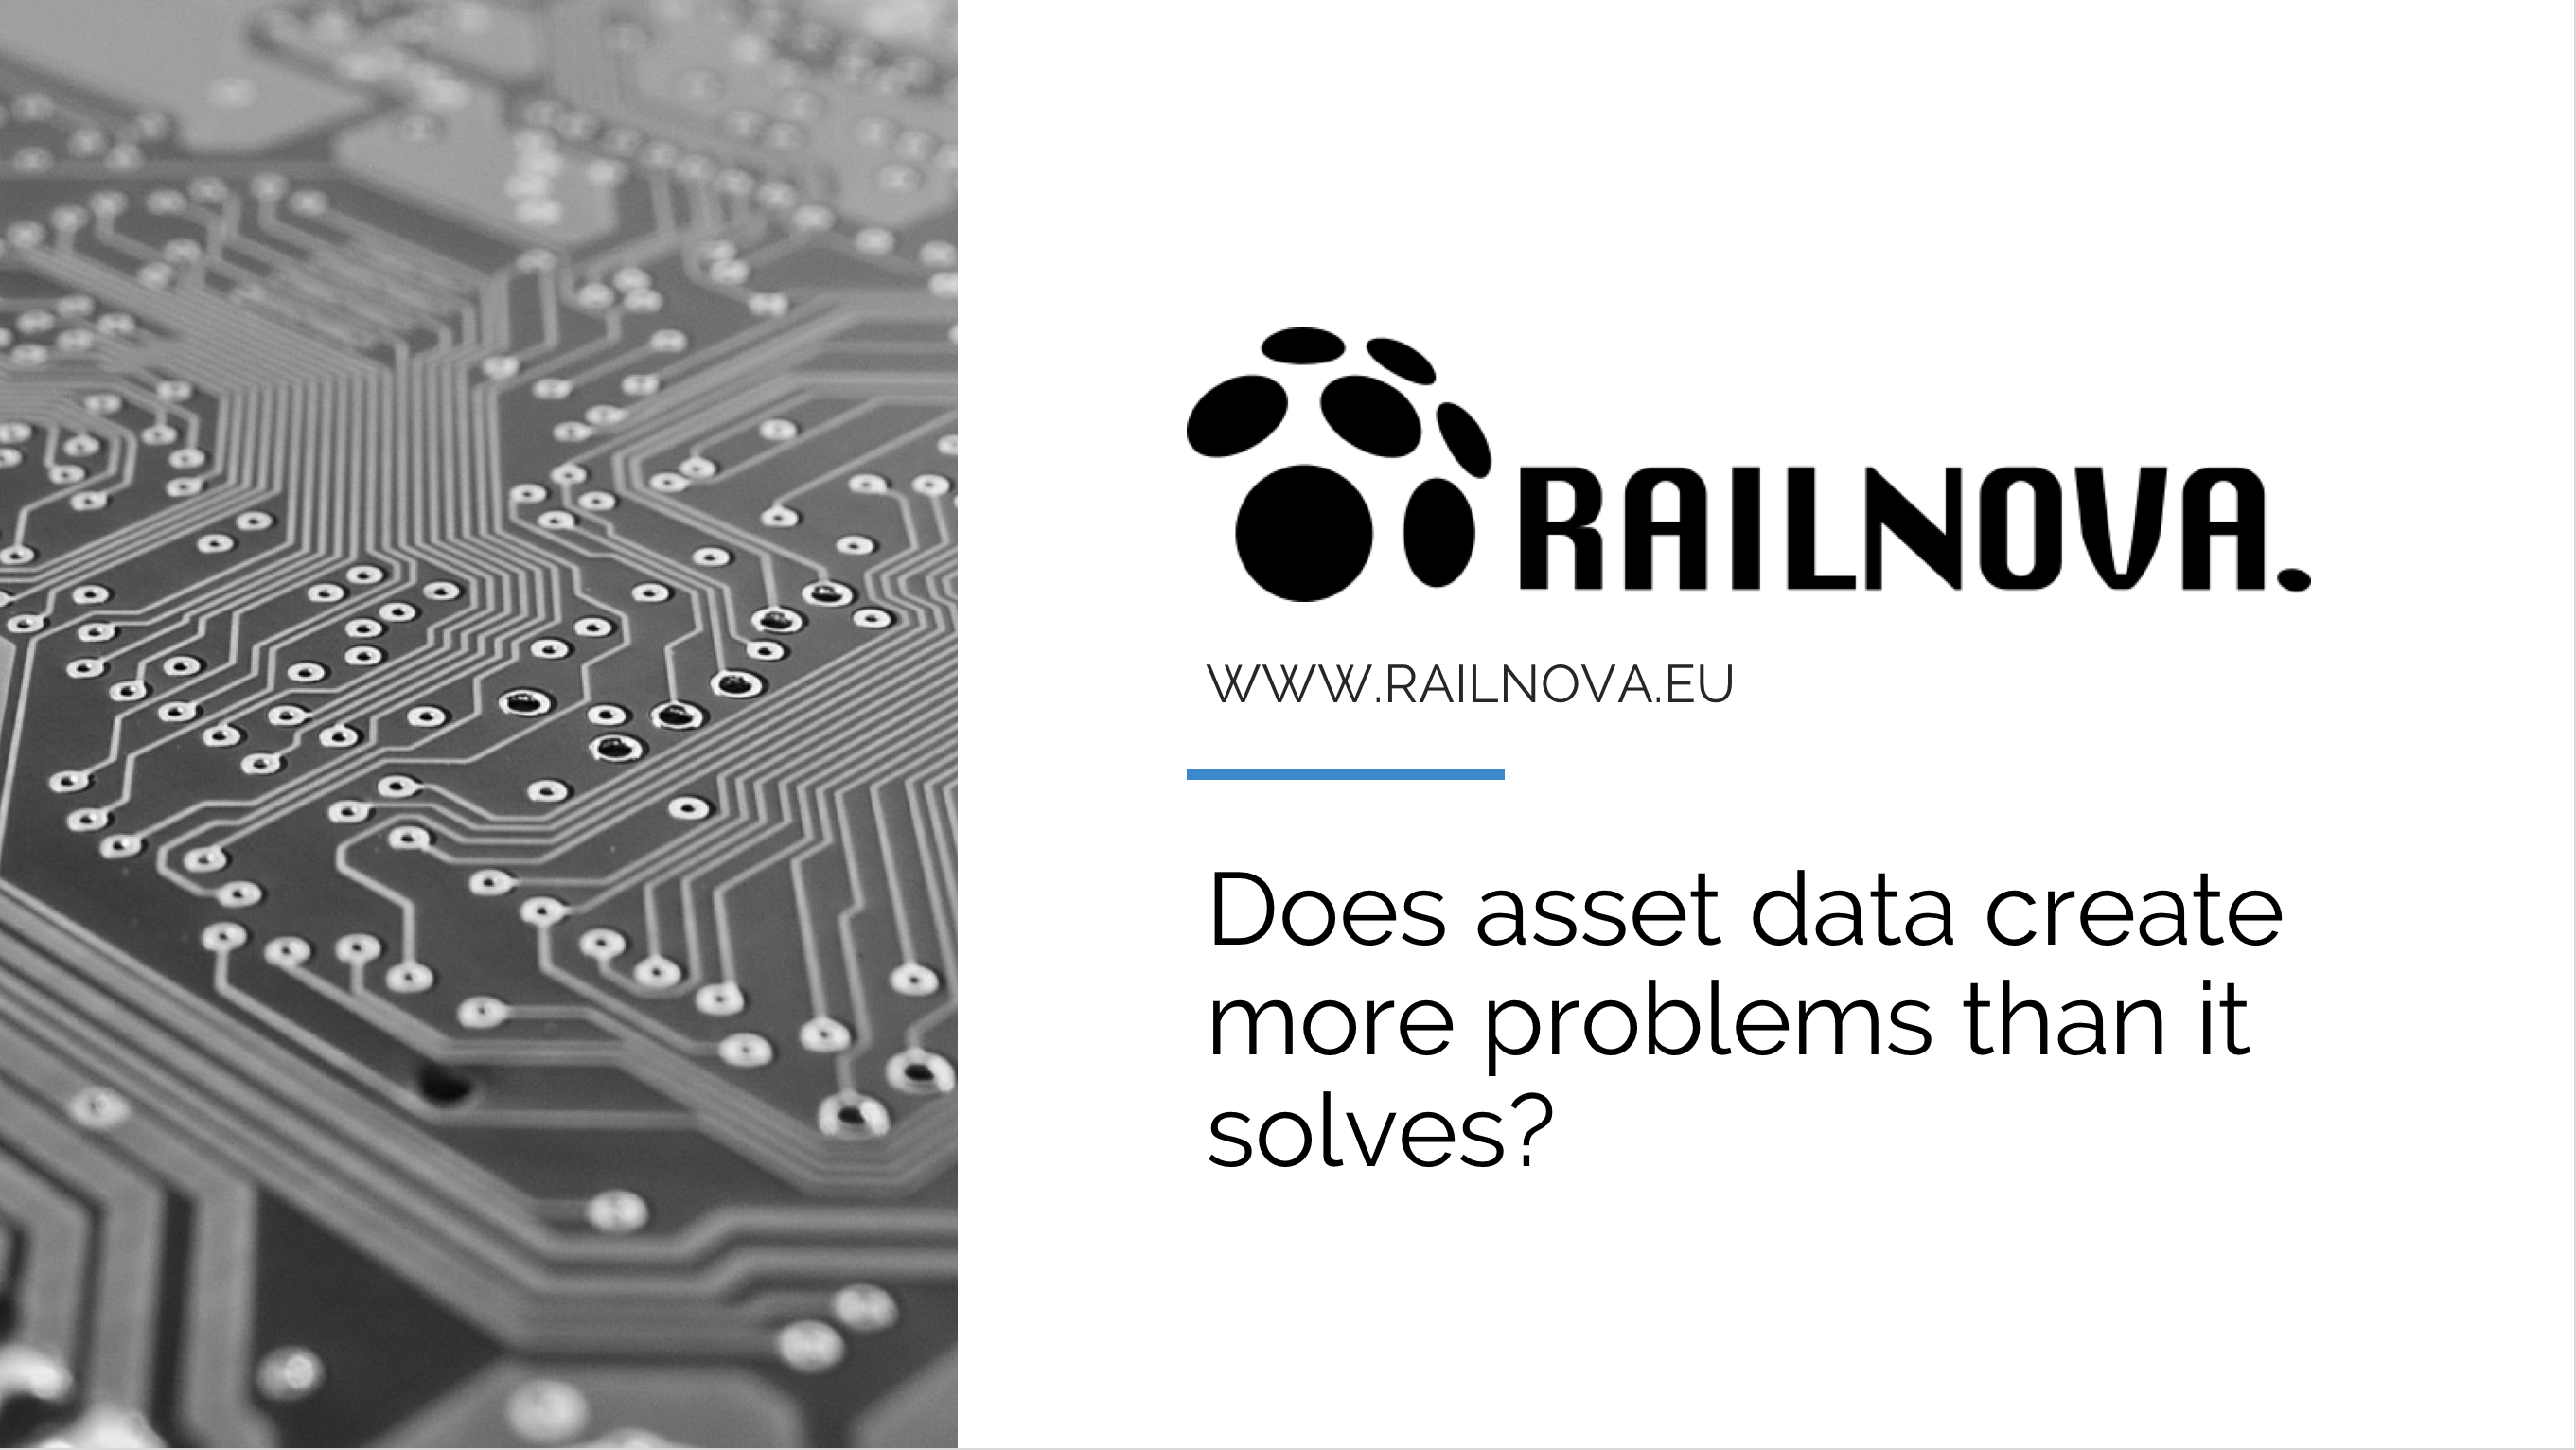 Does asset data create more problems than it solves